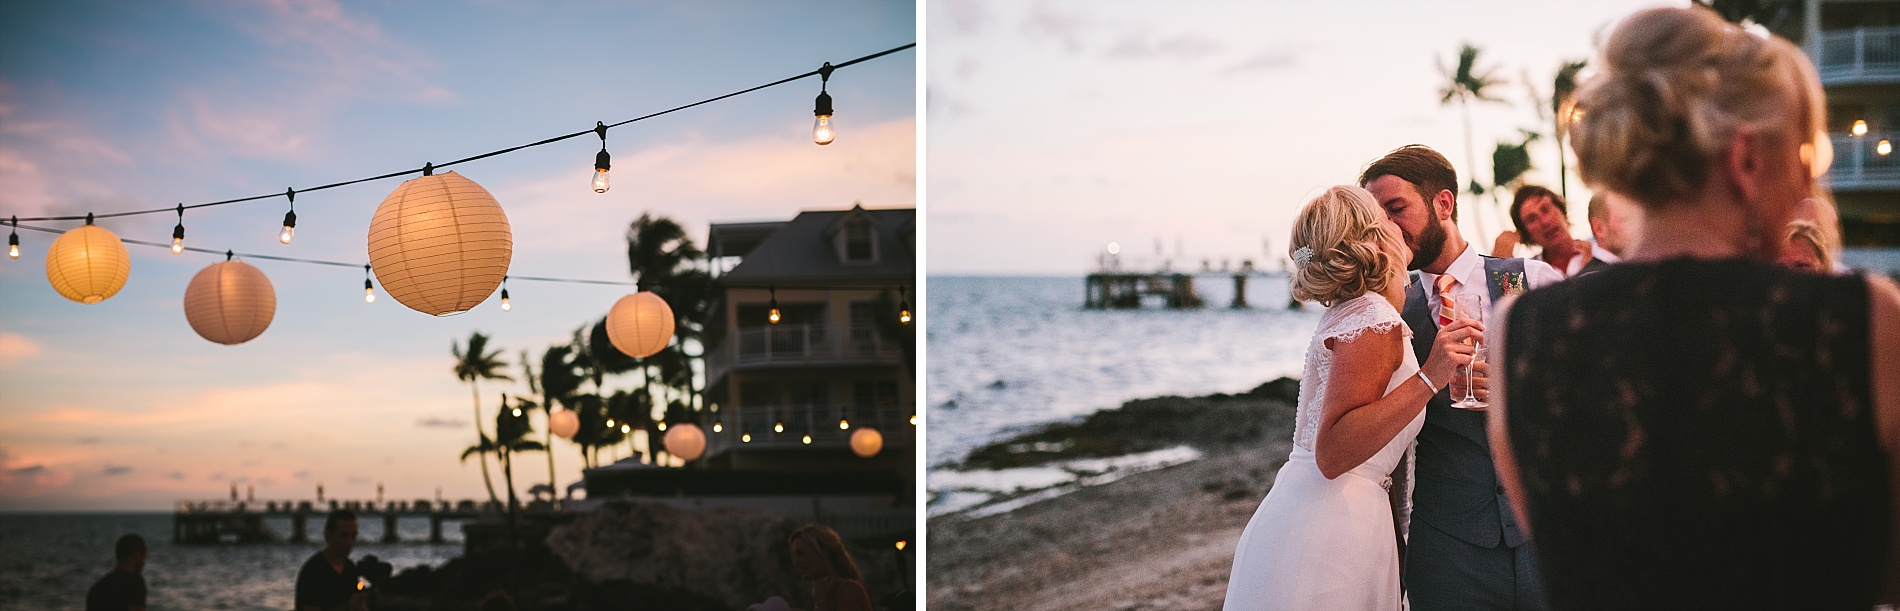 key west wedding photography 057